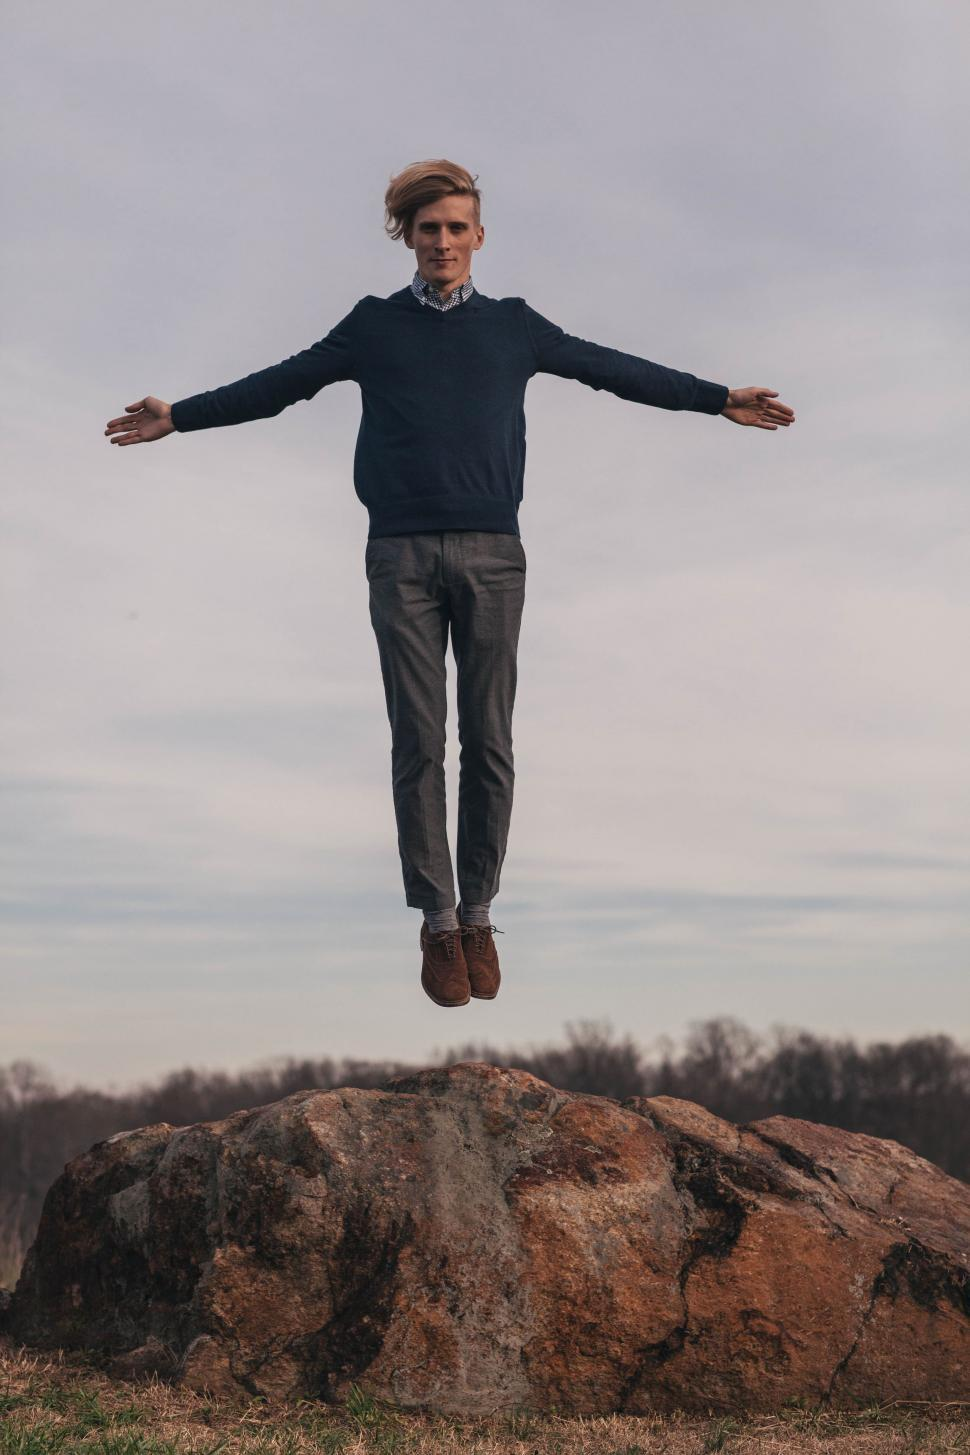 Download Free Stock Photo of Young Man Flying in the air